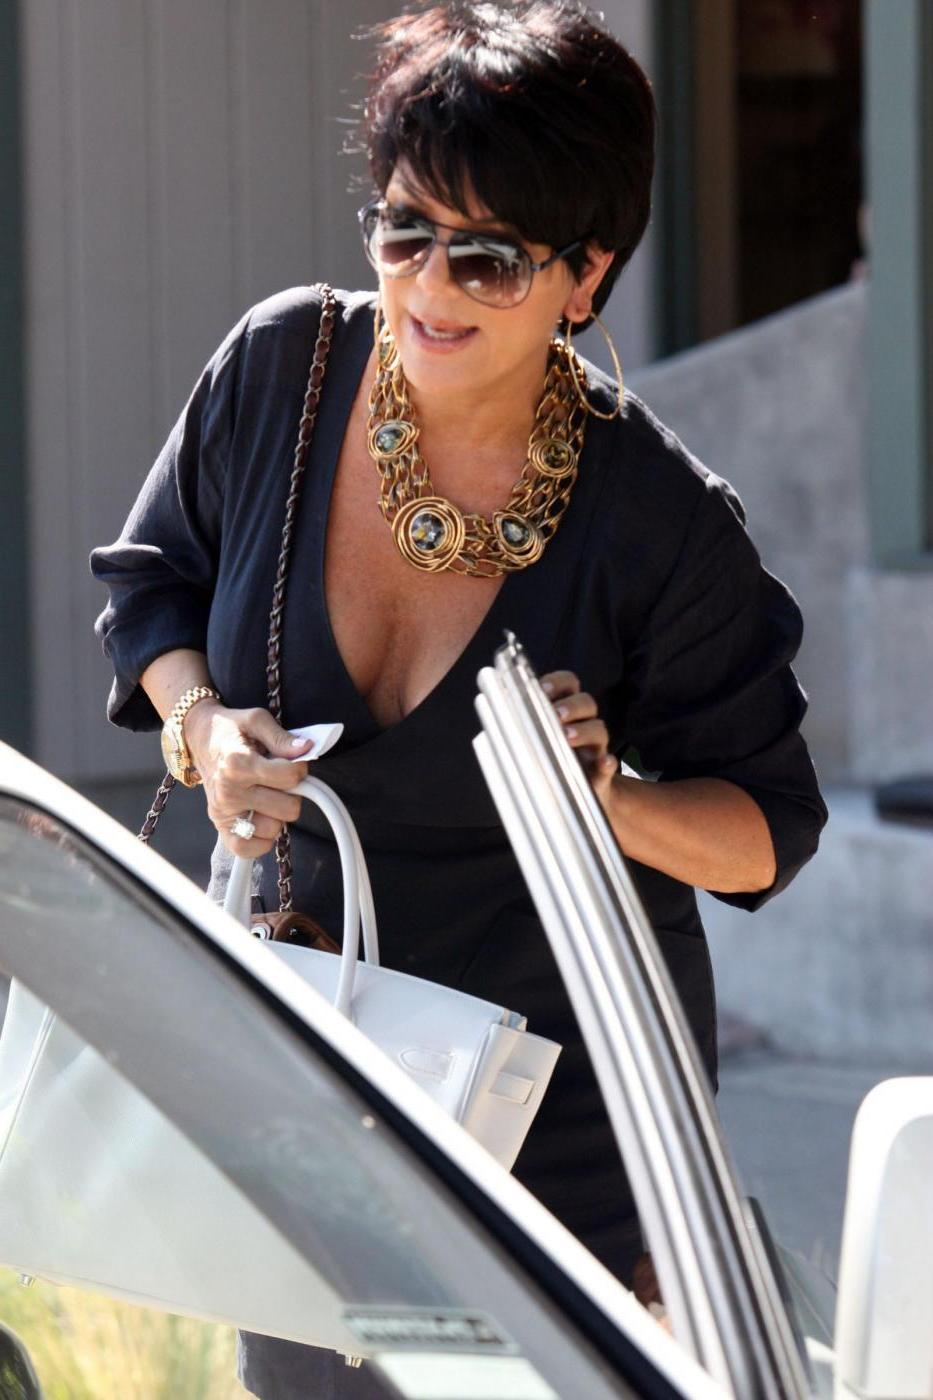 07-29-11 Los Angeles, CAReality star Kim Kardashian and her mother Kris